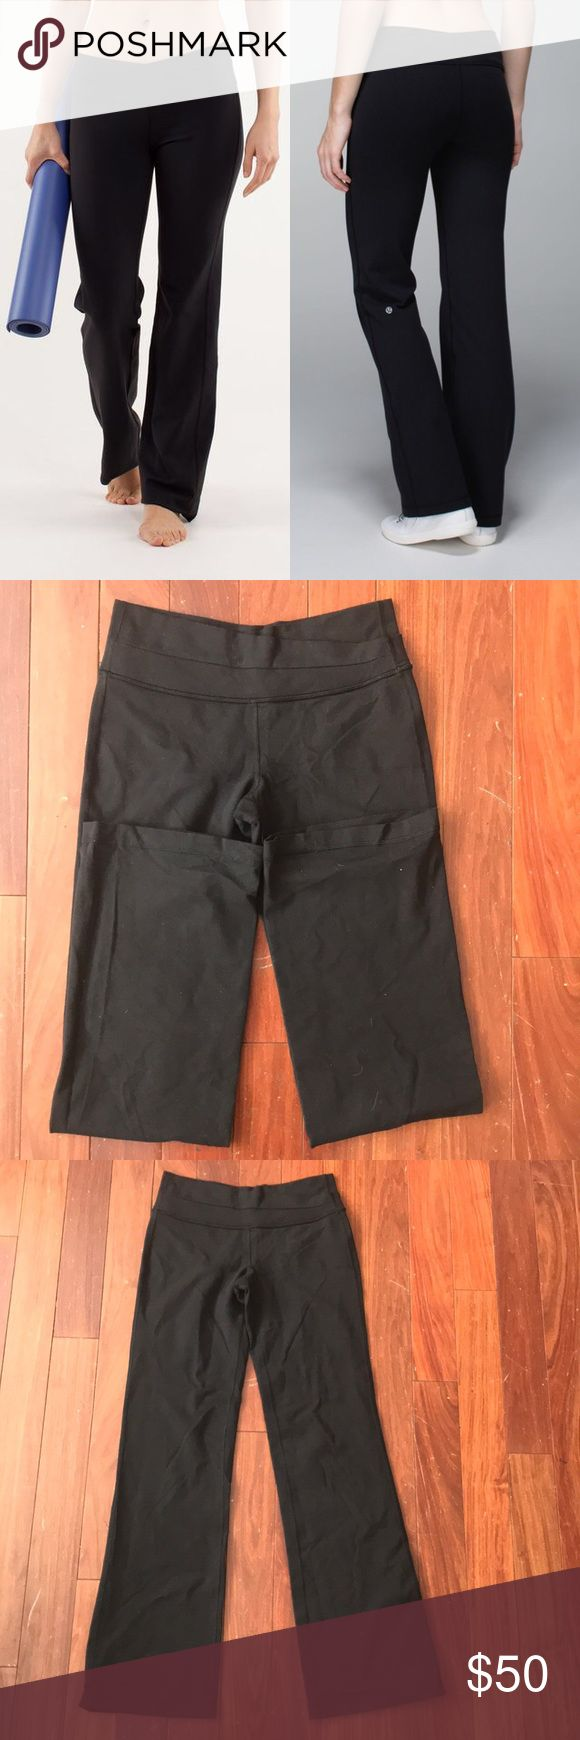 NWOT Lululemon Astro pant Tags removed, tried on but never worn! No rips, holes or stains. Also no condition issues such as pilling or fading. Sz 6. Any questions, please ask! lululemon athletica Pants Leggings